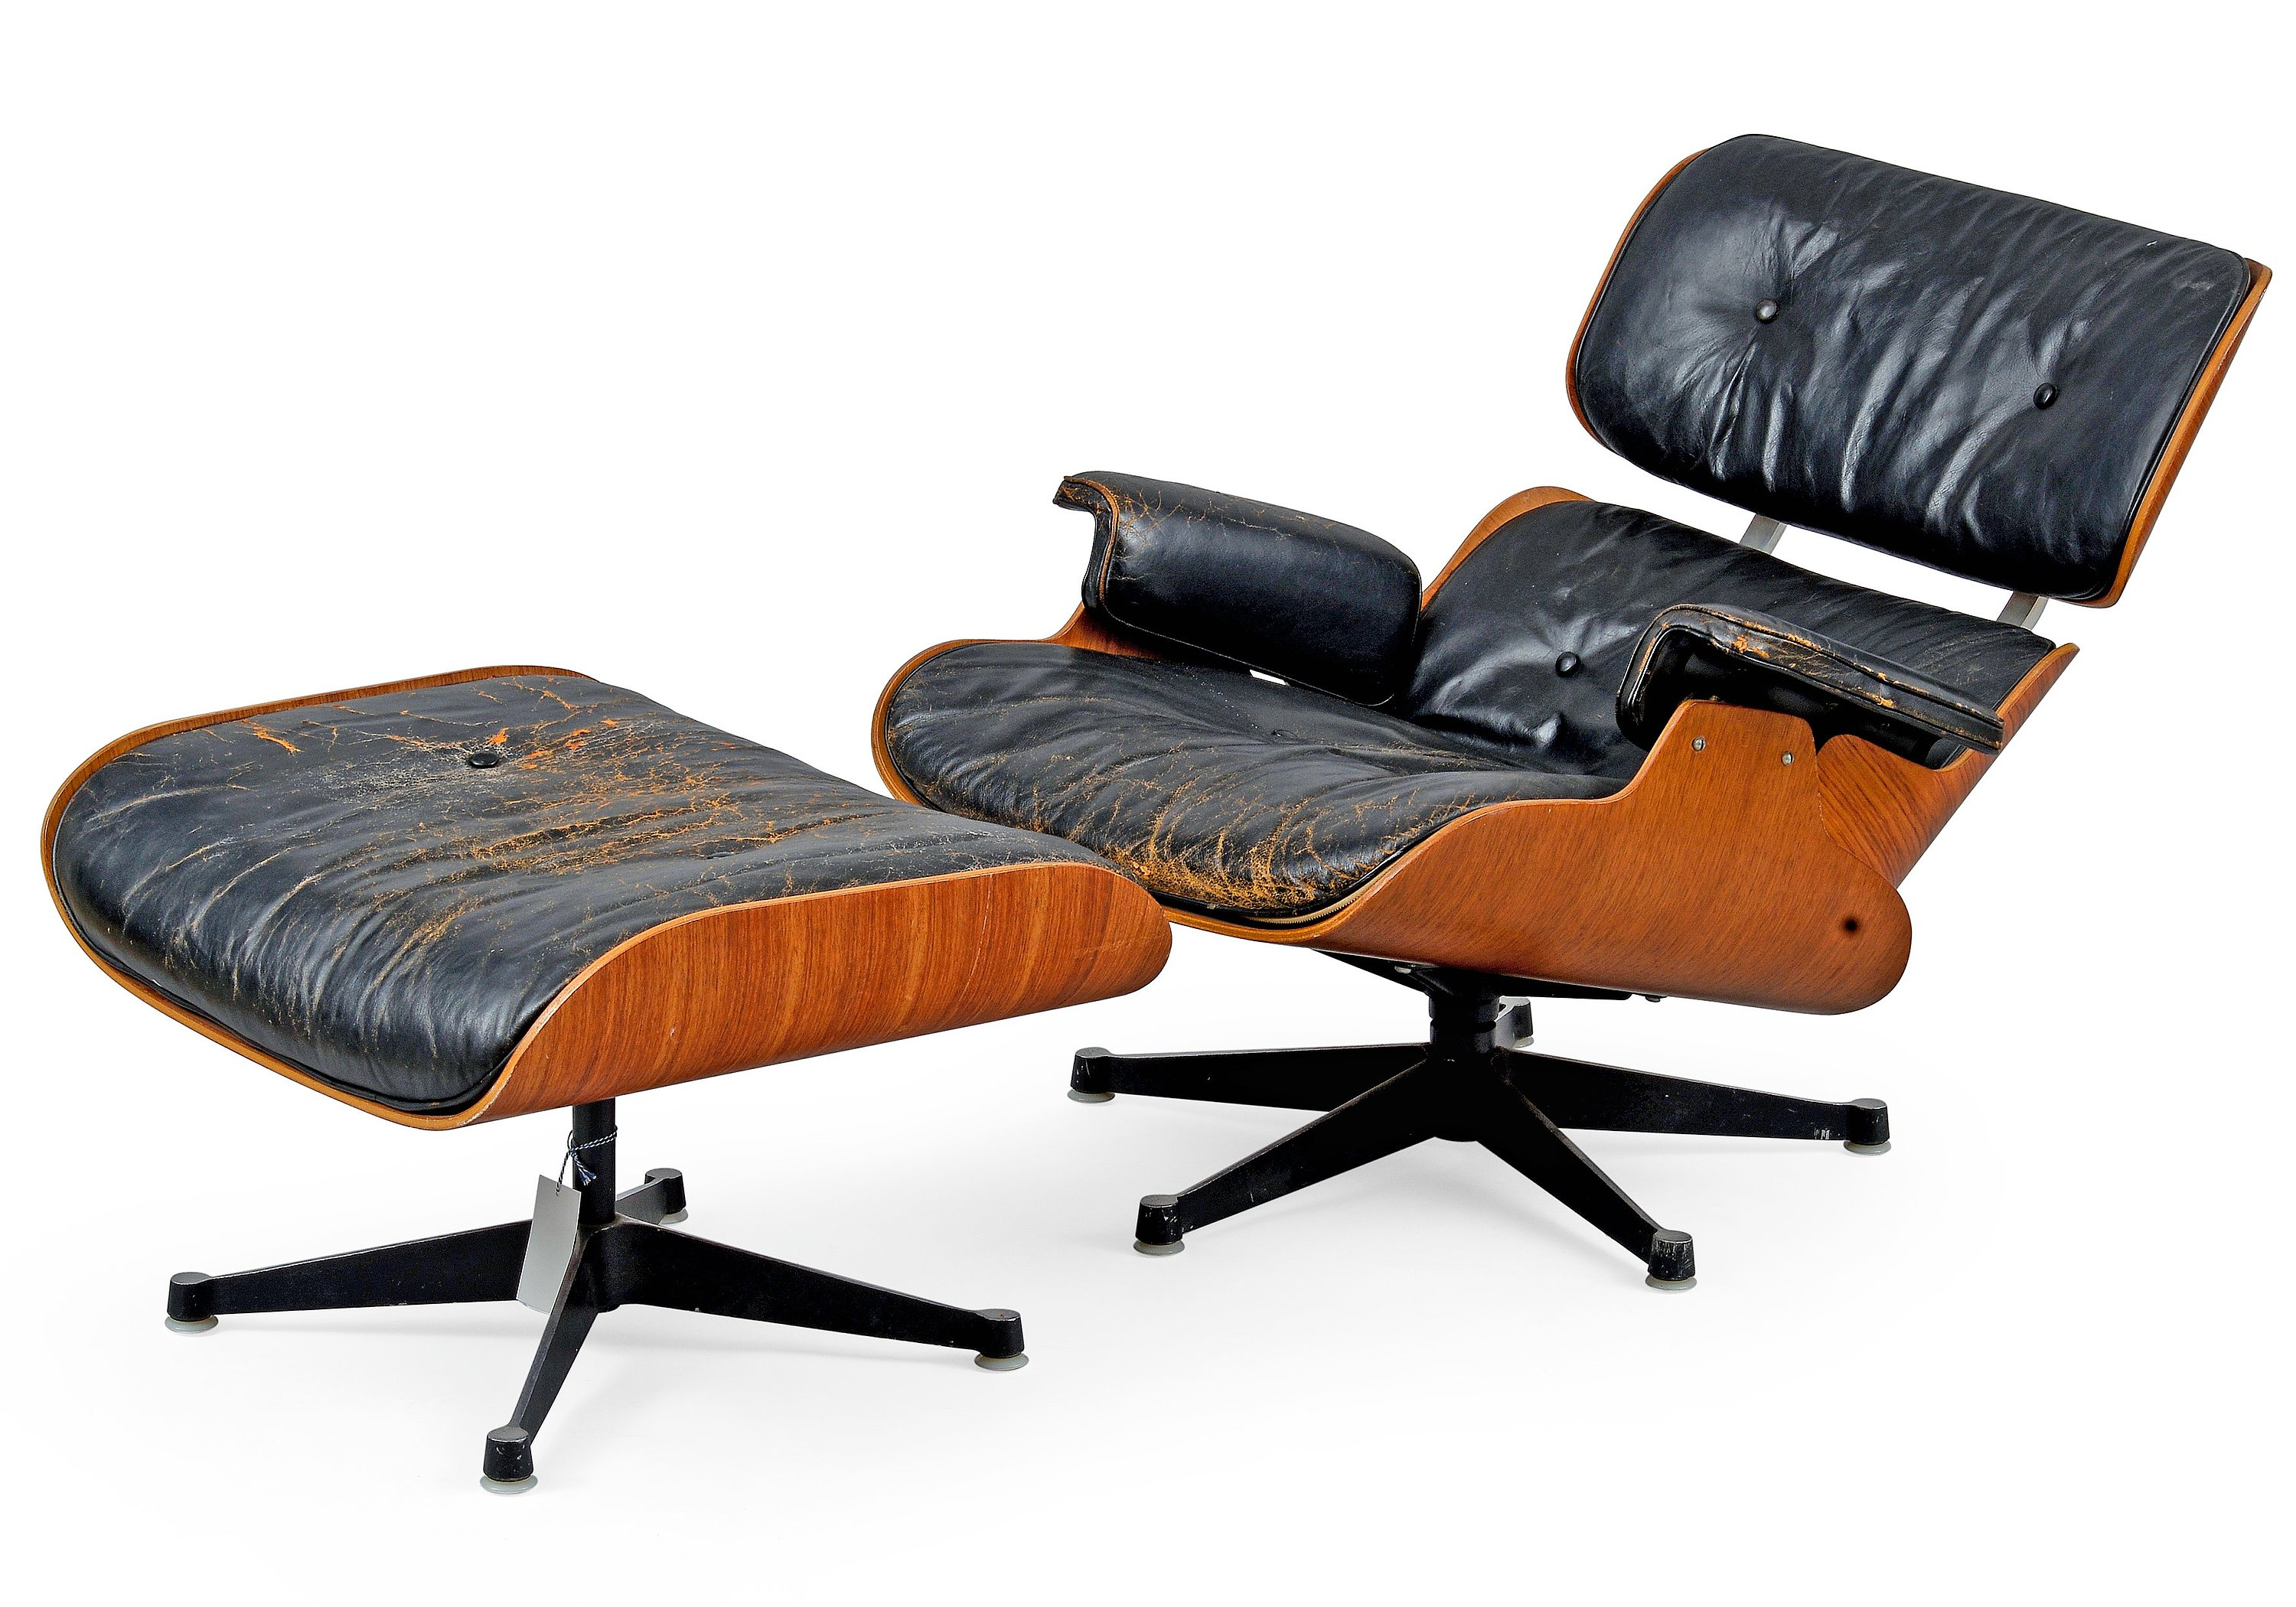 Charles Ray Eames Lounge Chair With Ottoman Bukowskis